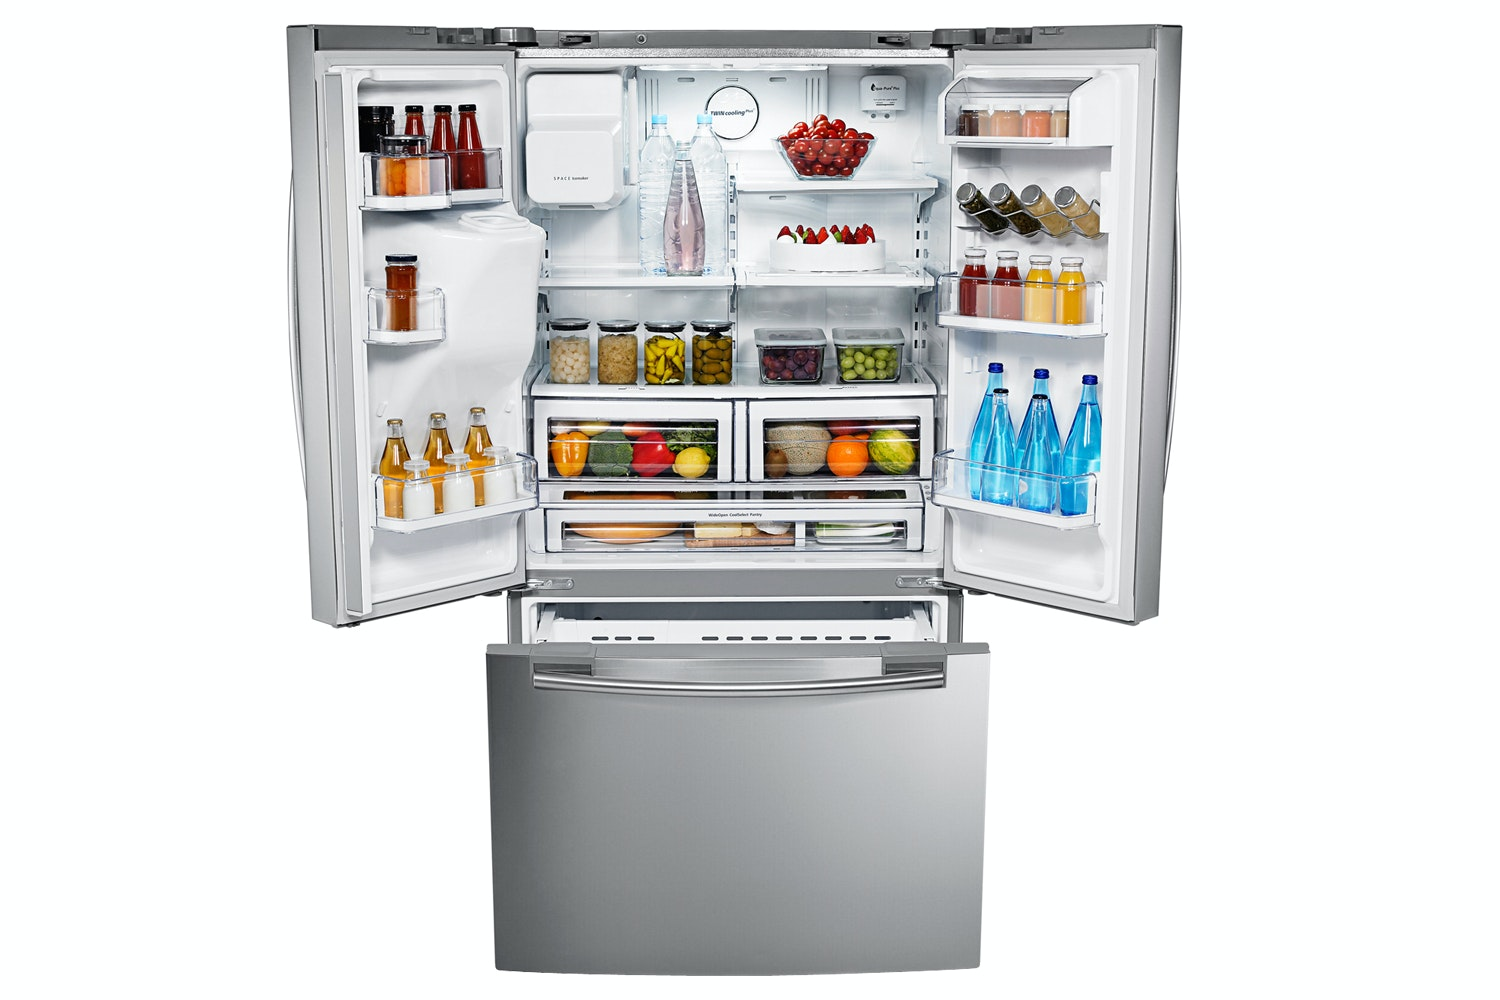 Samsung G-Series Three Door Refrigerator